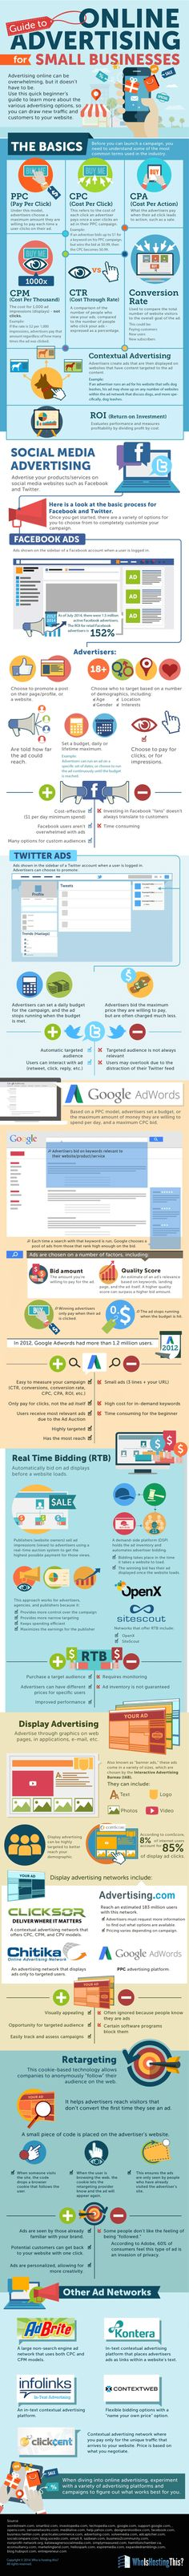 The small business guide to online advertising (Infographic) » SMEInsider